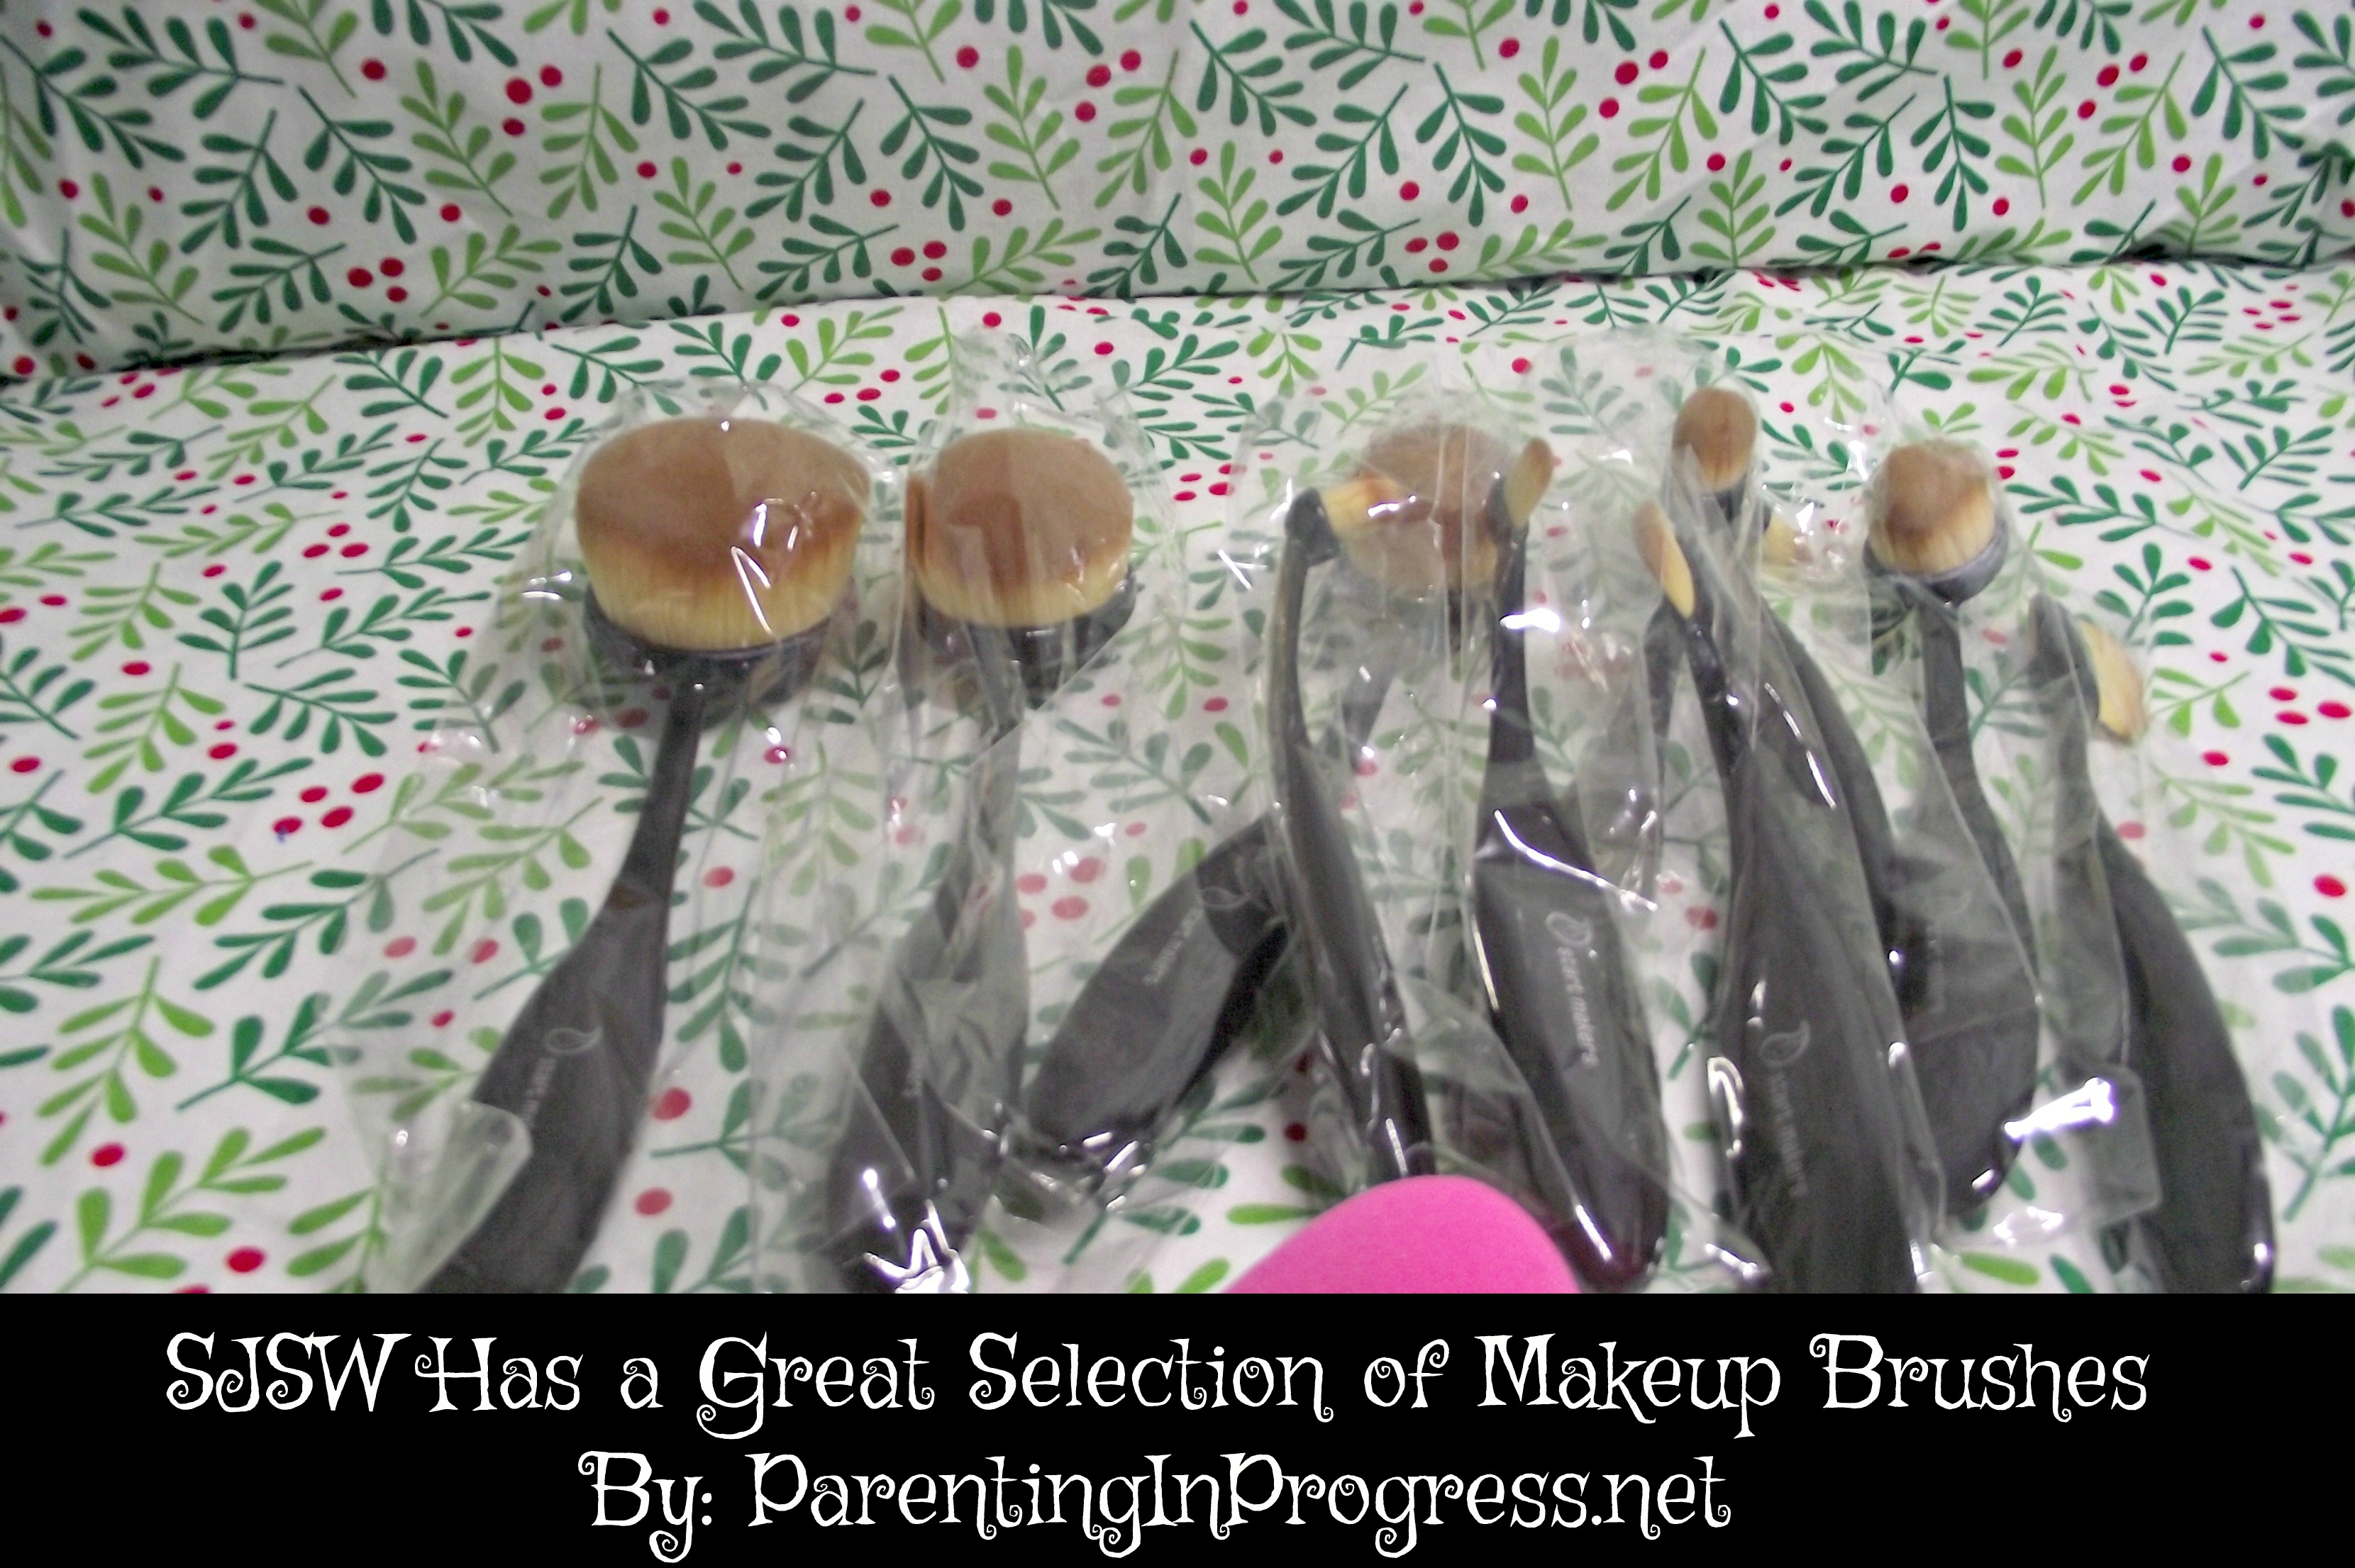 SJSW Has a Great Selection of Makeup Brushes